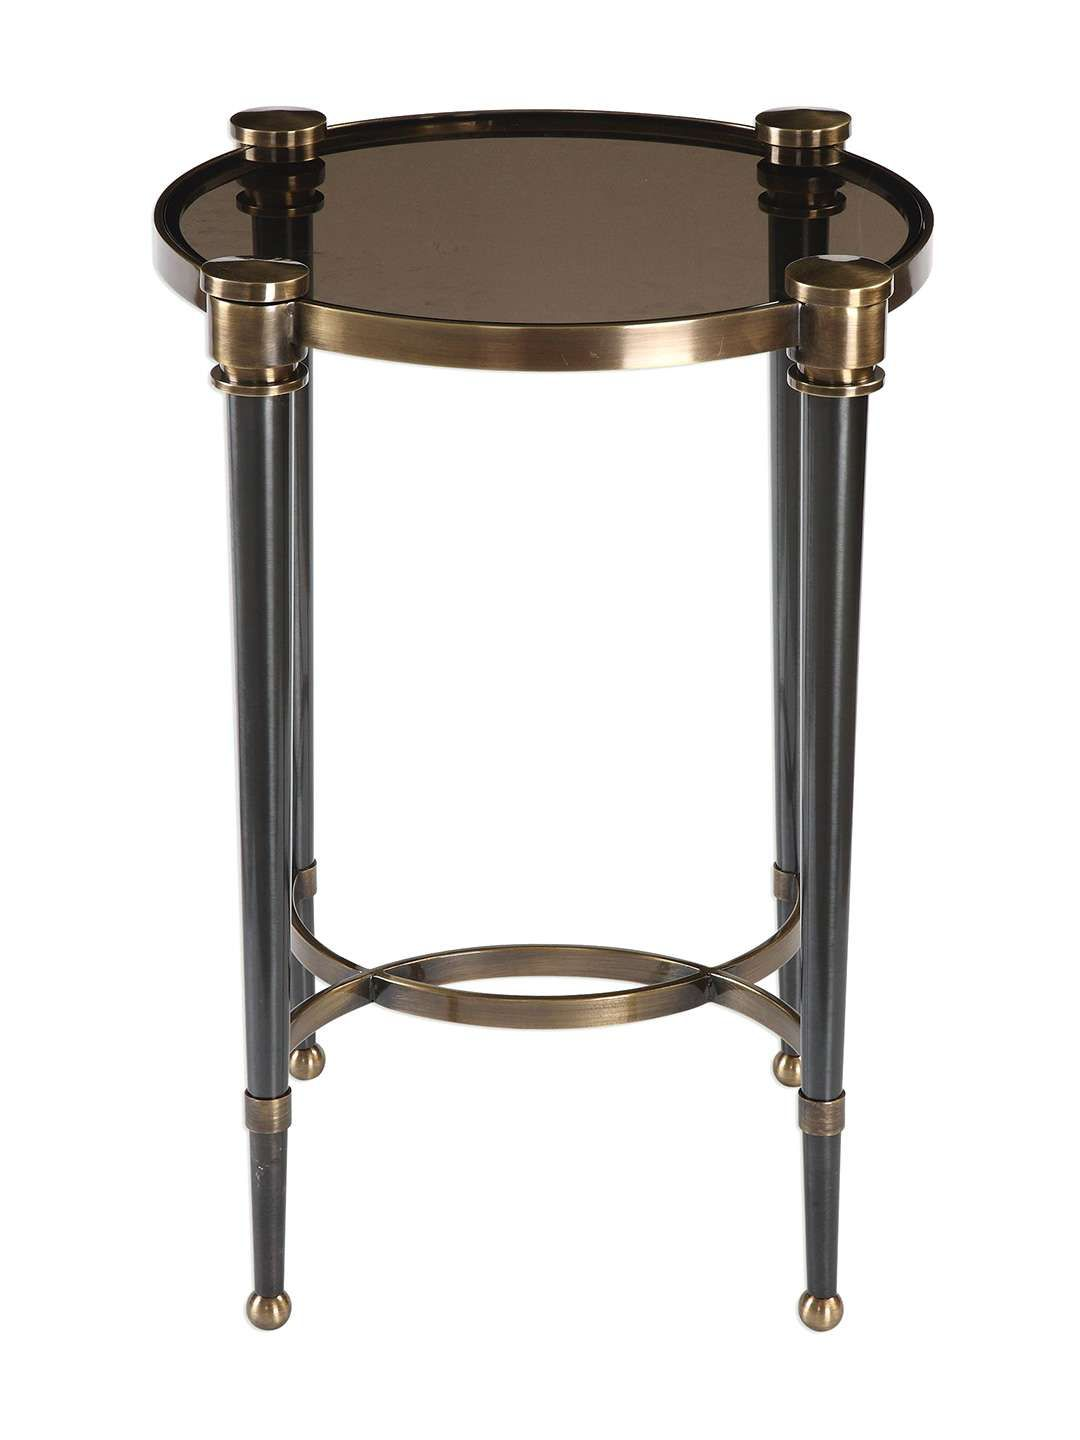 uttermost thora round accent table iron glass top features brushed tapered legs assembly required measurements wicker chair spring haven collection mission style lighting west elm